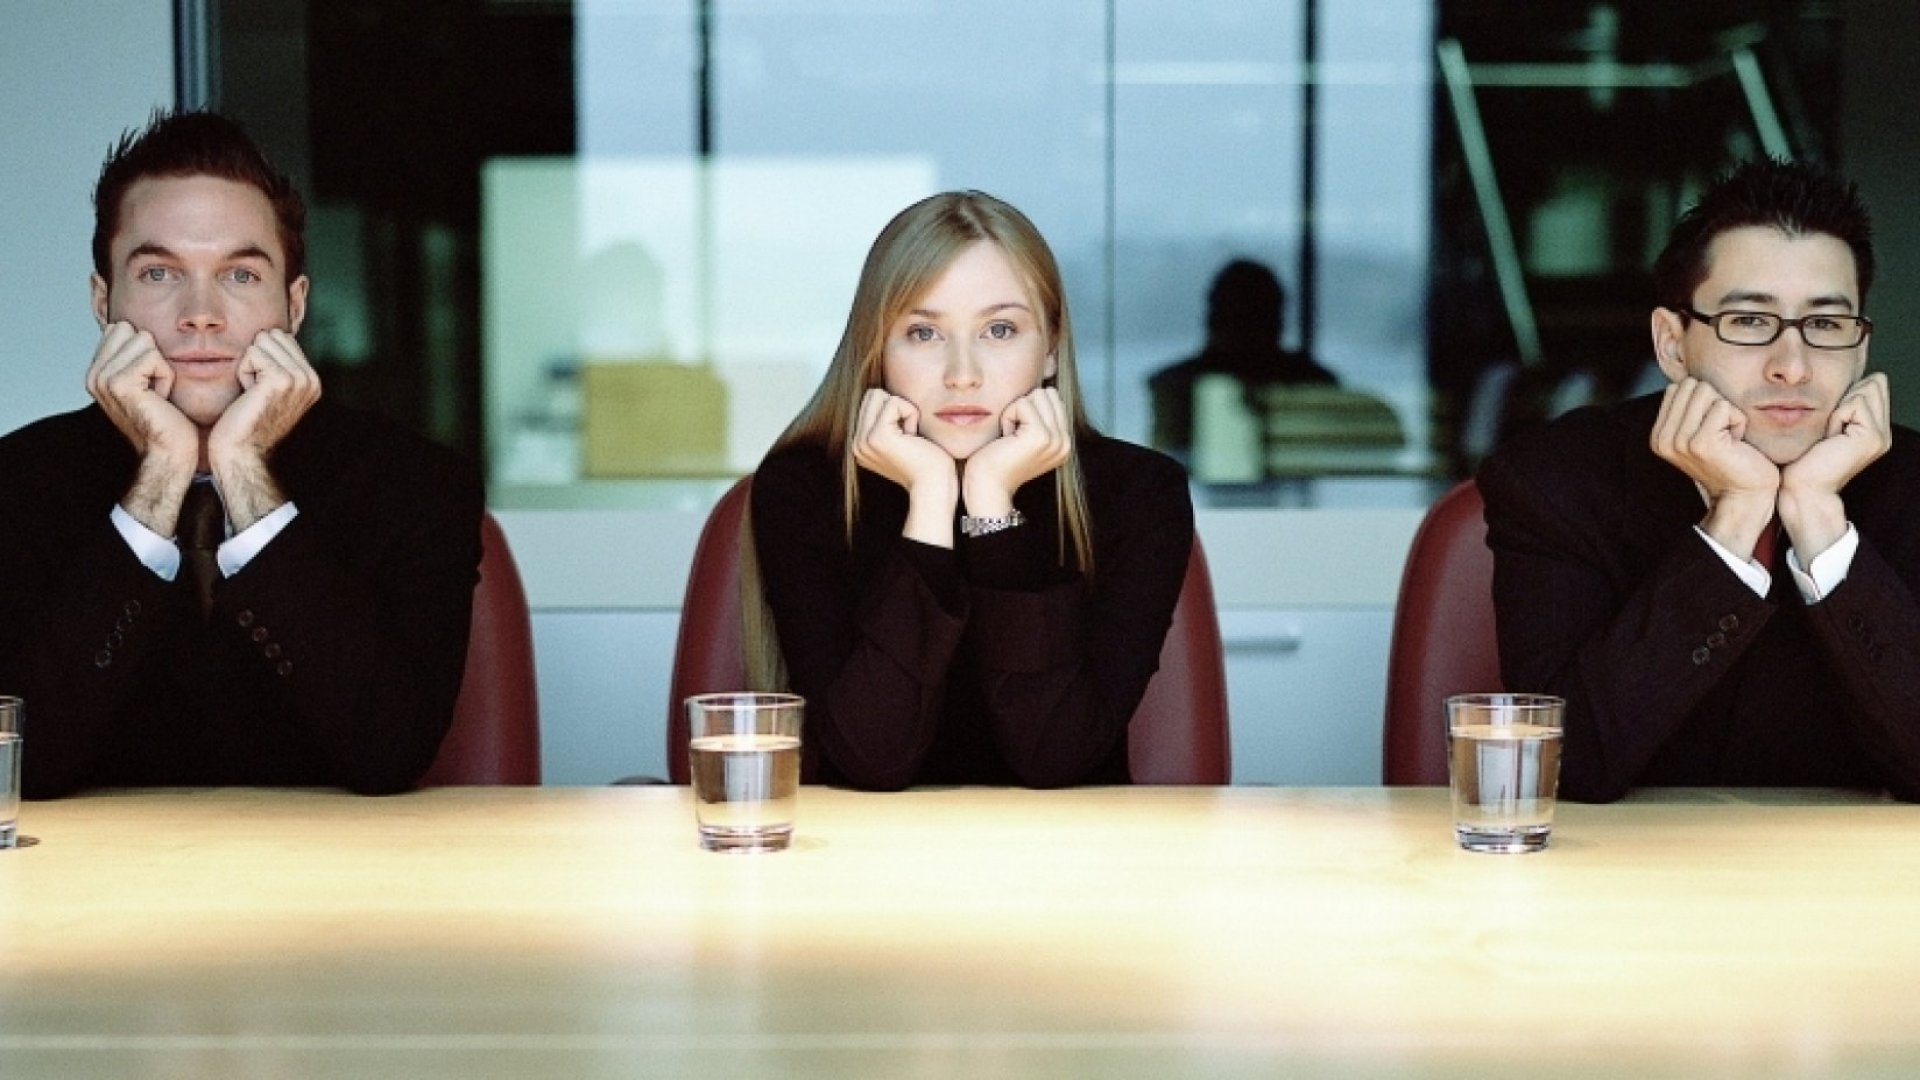 9 Things That Make You Look Really Unprofessional in Meetings